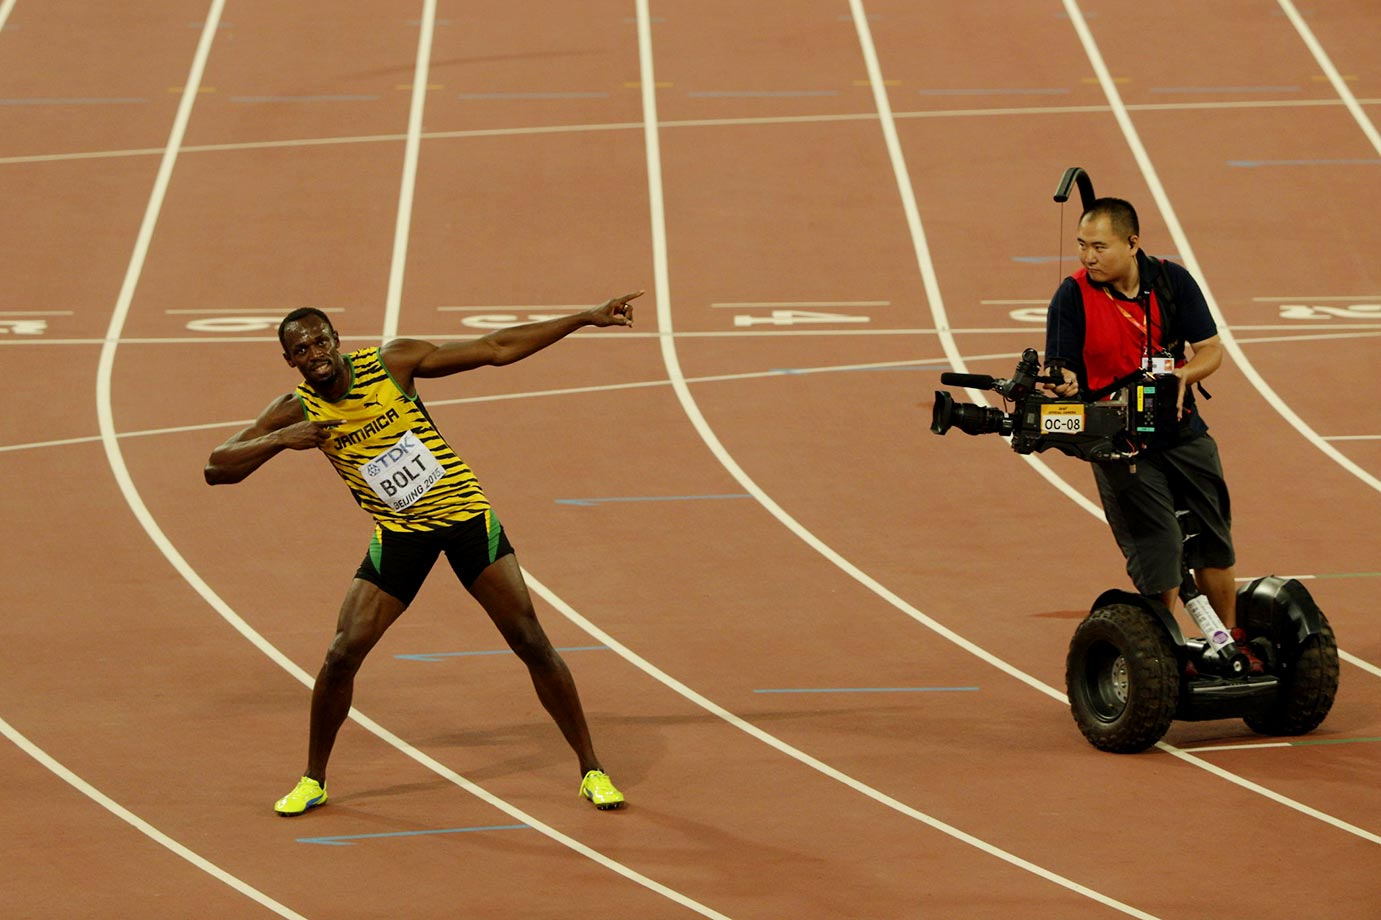 Usain Bolt holds the pose for the man on the Segway at the Track and Field Championships in Beijing.